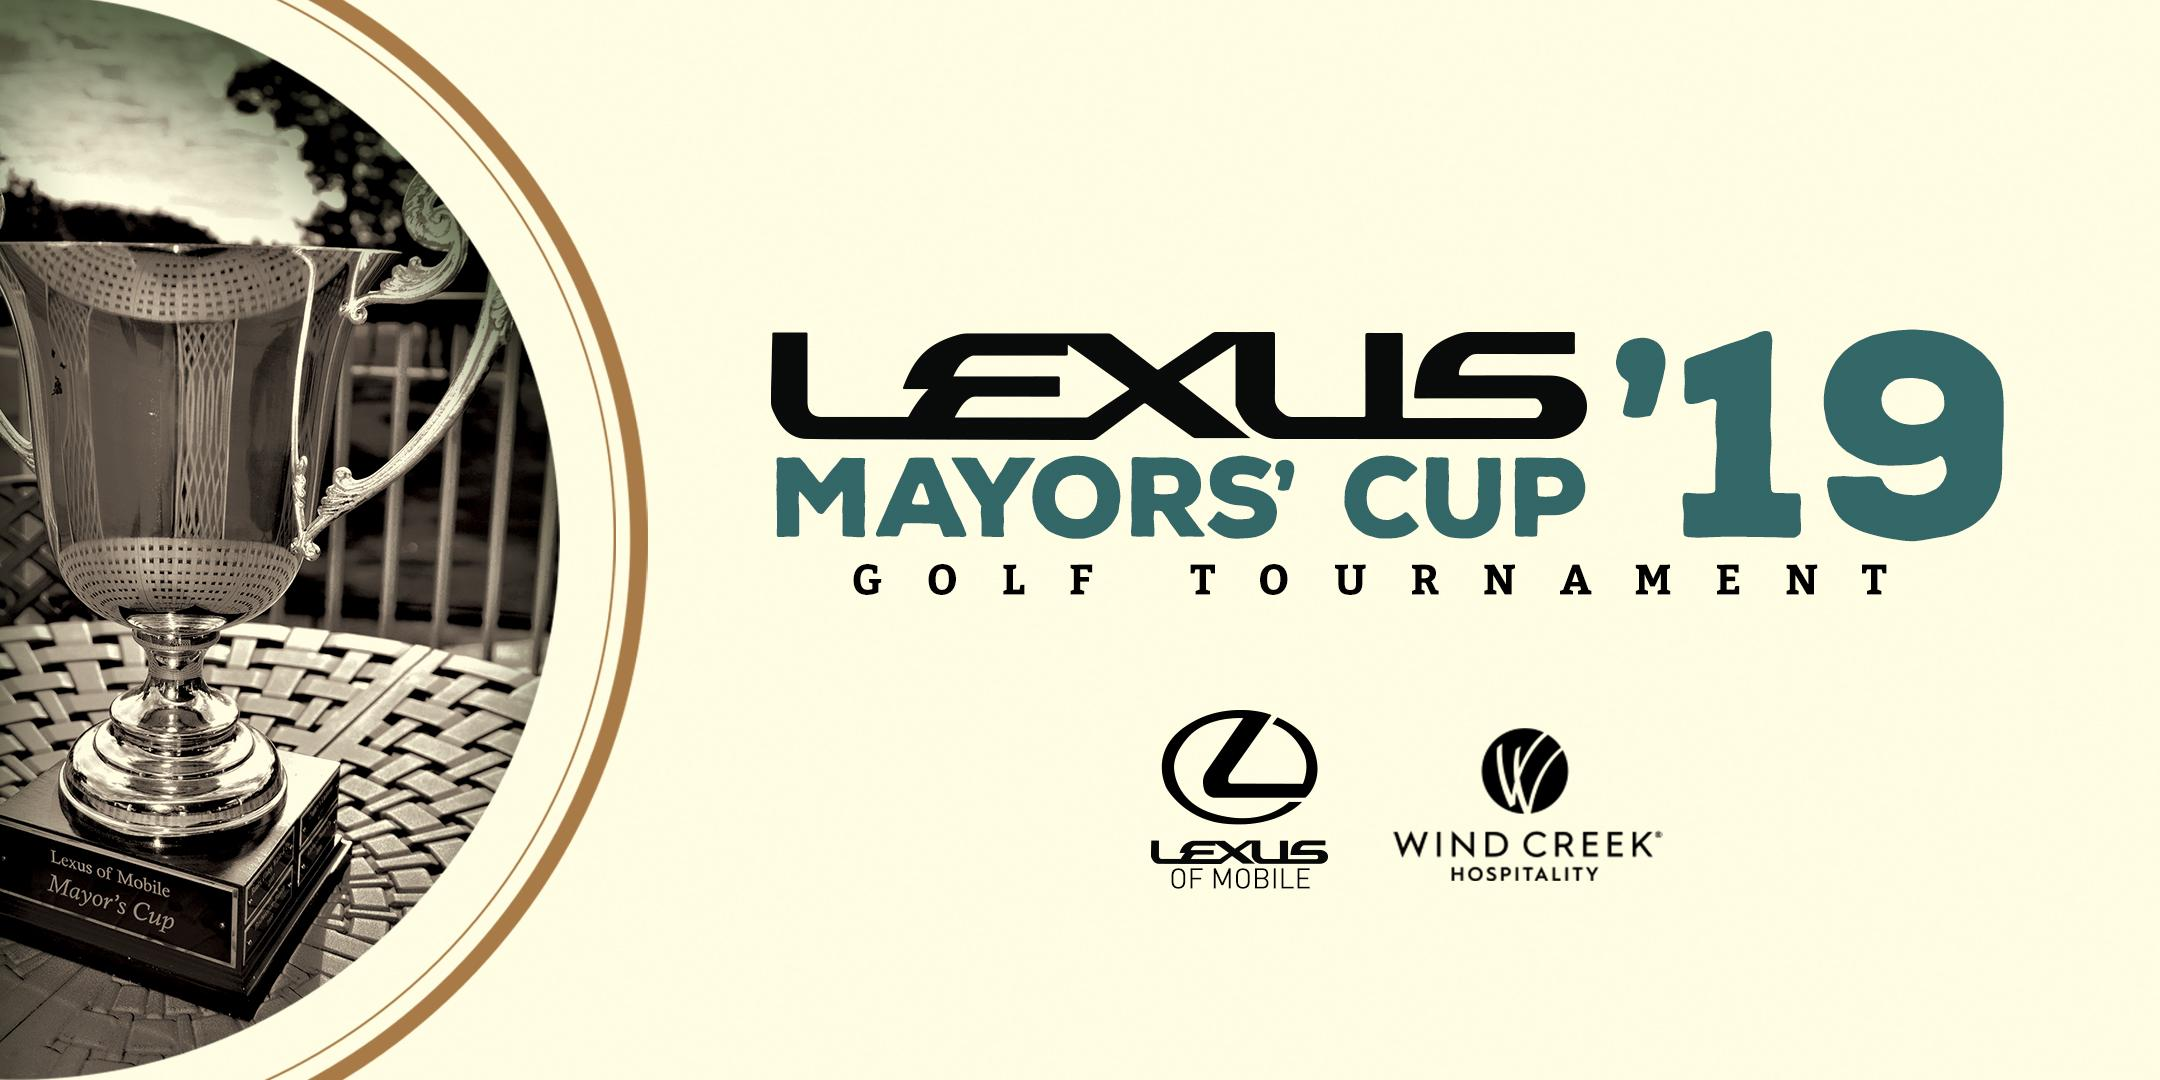 2019 Mayors' Cup Golf Tournament